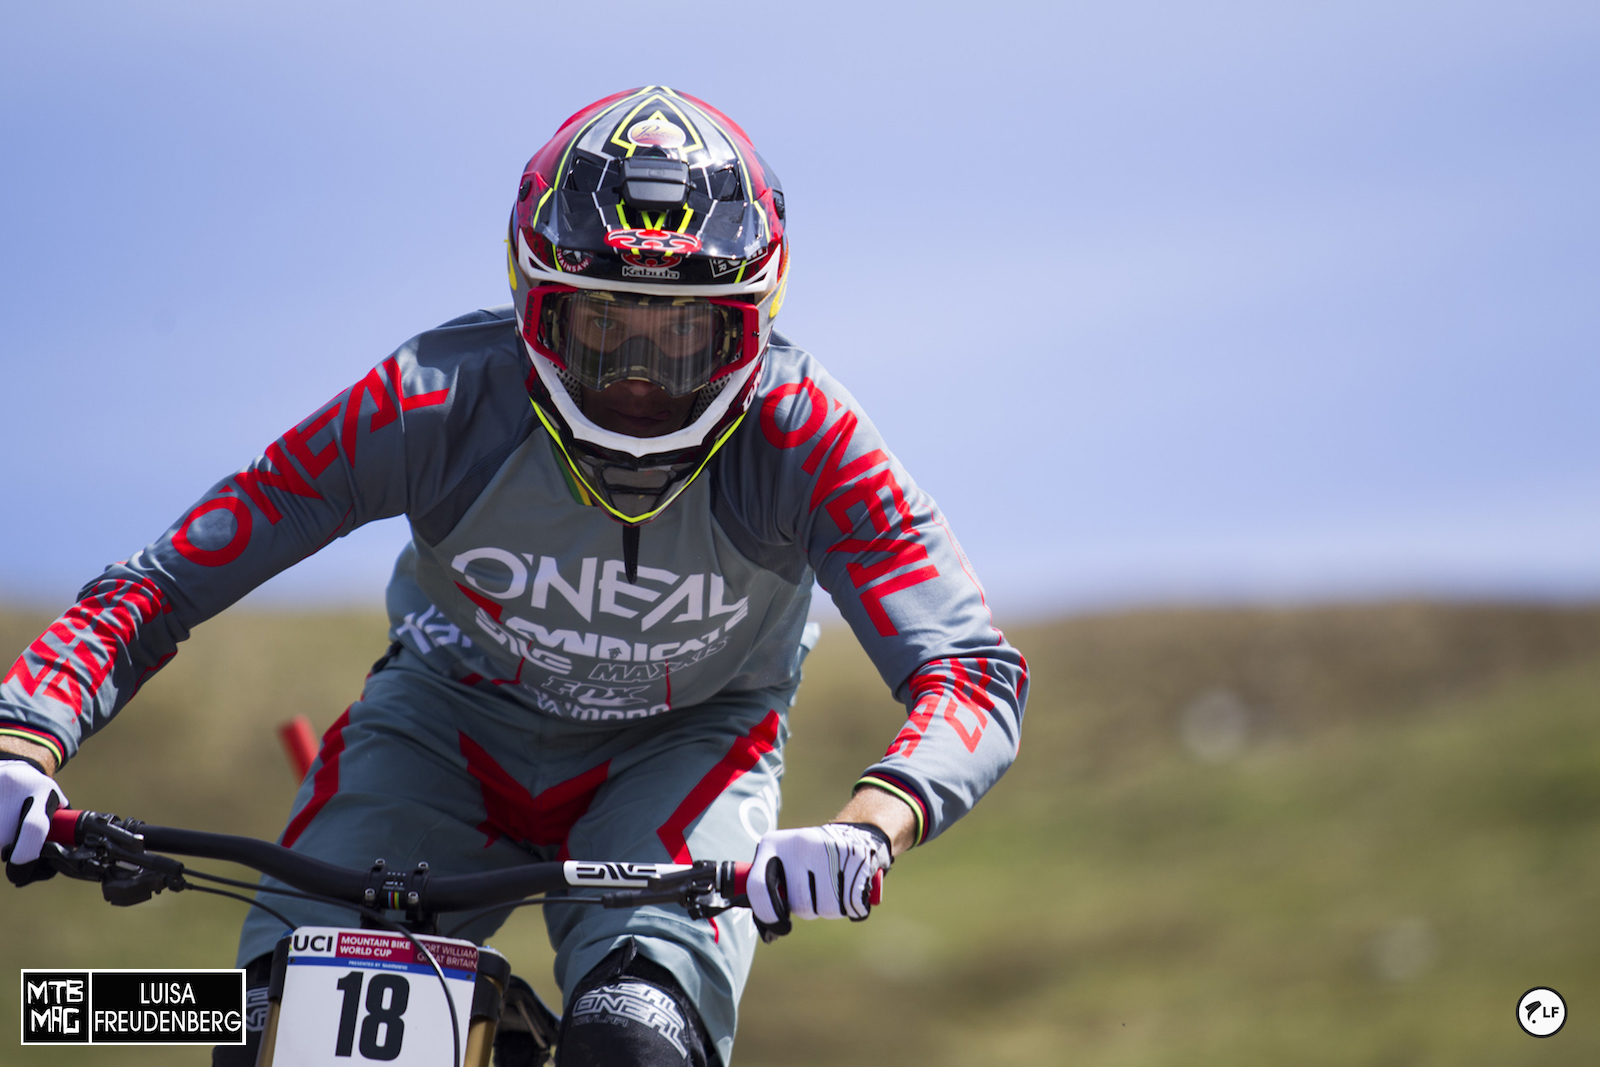 NEVER count Minnaar out....especially at Fort William.  He won here last year.